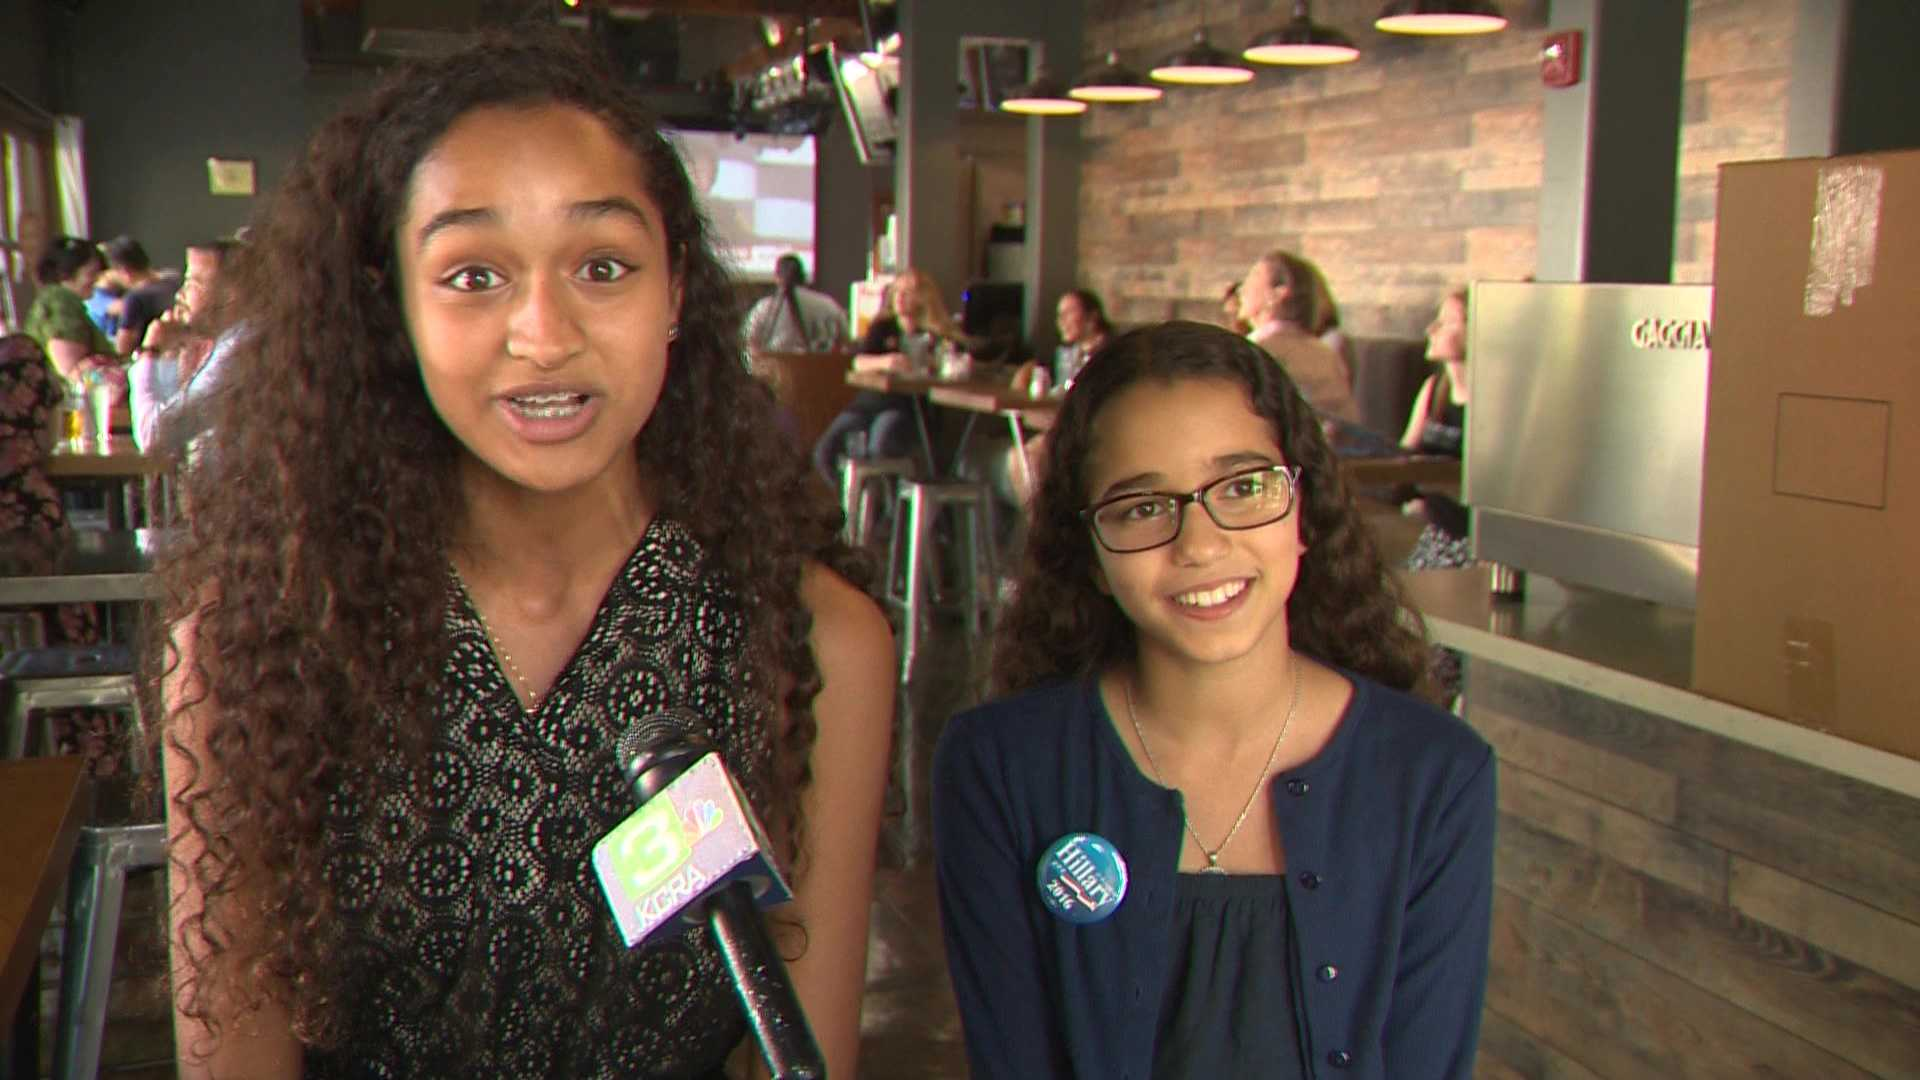 Sisters 15-year-old Naysak and 12-year-old Nasma Wali-Ali attended a watch party Thursday, July 28, 2016, to see Hillary Clinton accept the Democratic presidential nomination.